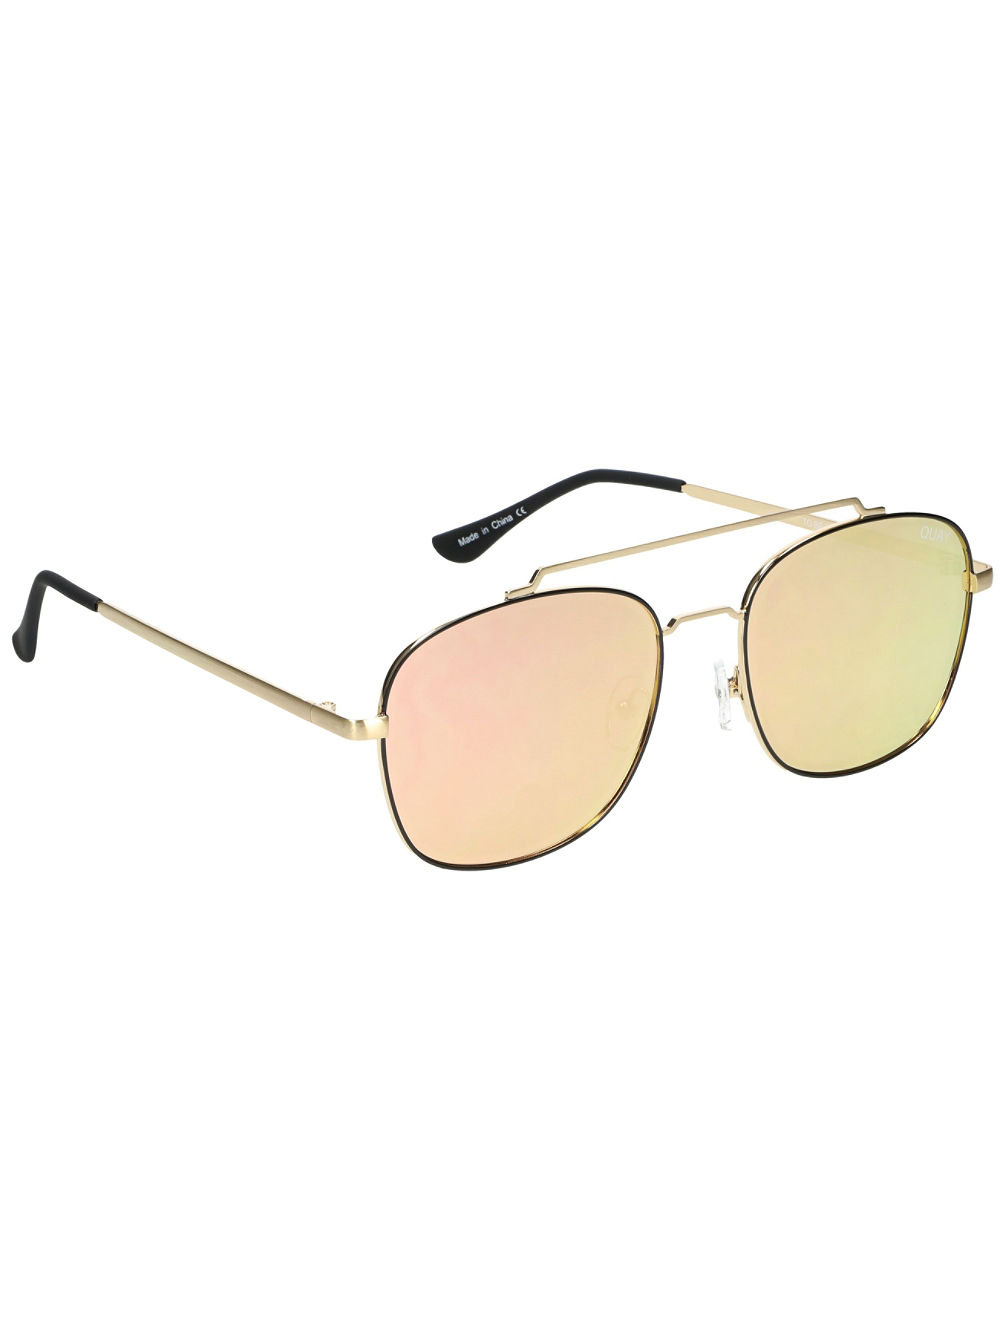 To Be Seen Gold Sonnenbrille